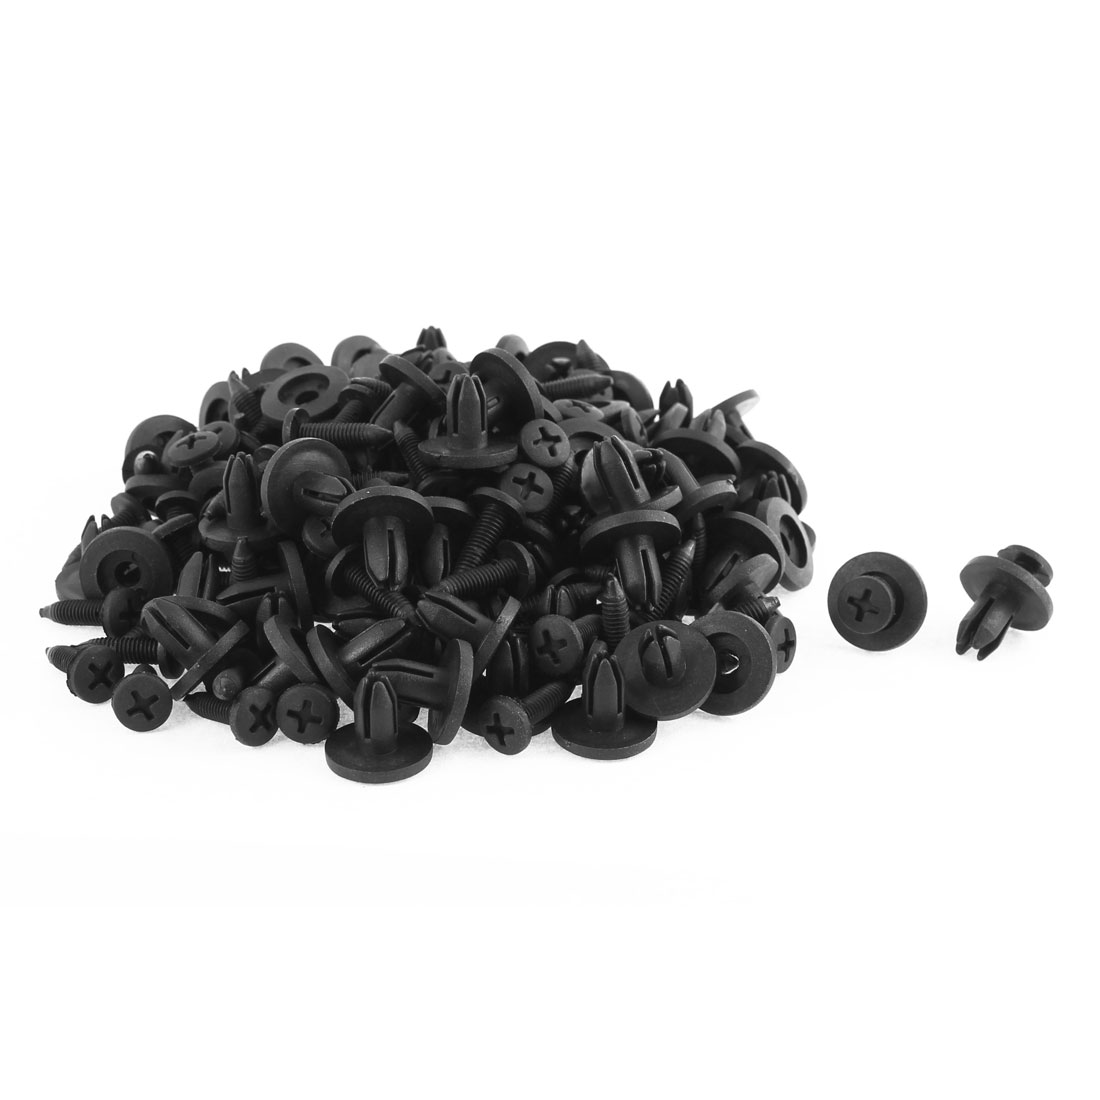 100 Pcs Black Plastic Screw Rivet Lining Trim Panel Retainer Fastener Clips